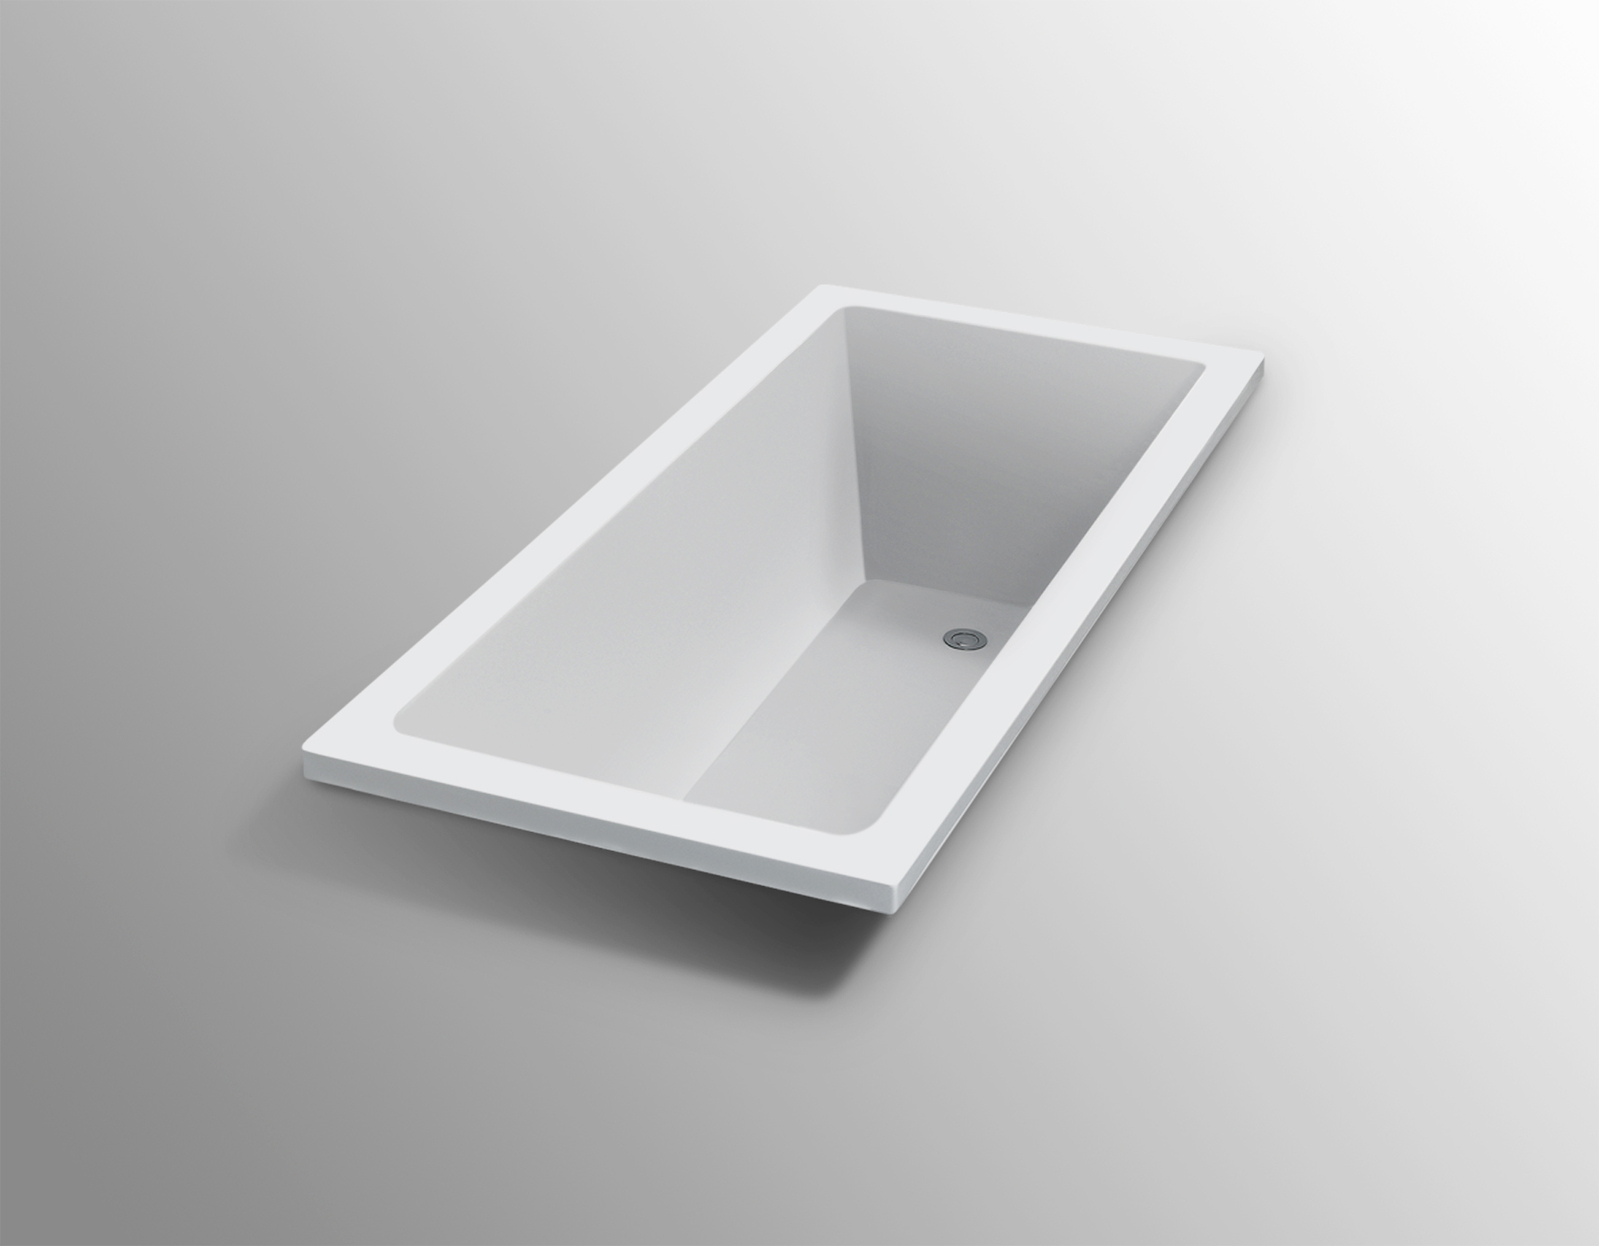 Best BM Bari Drop In Bath Tub Bathroom Bathtub 1500mm BTB1500